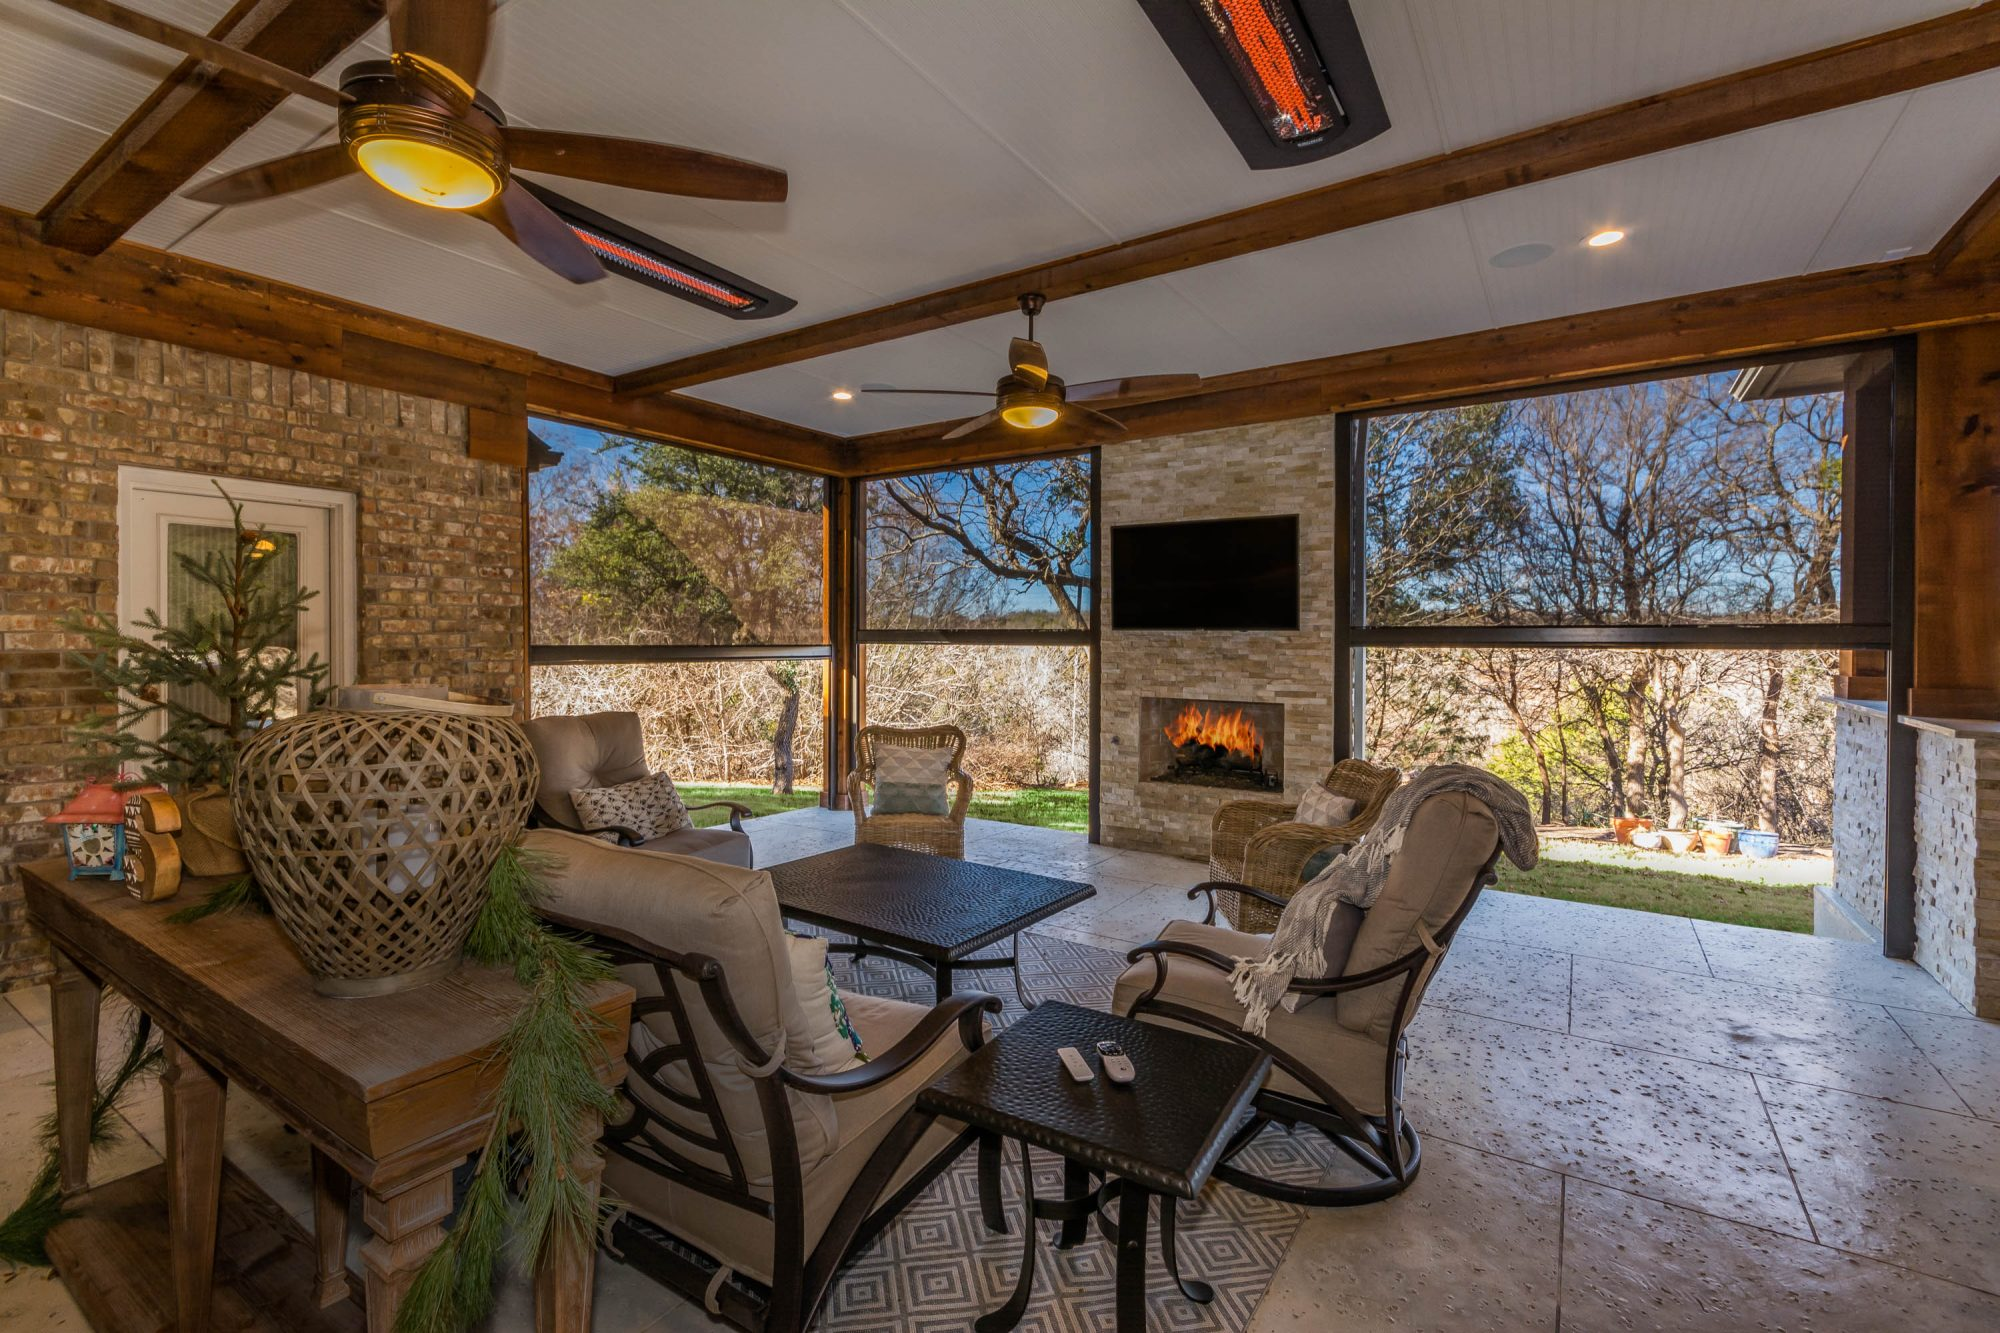 Enclosed outdoor living area with patio furniture near a outdoor fireplace designed and constructed by Compass Outdoor Design